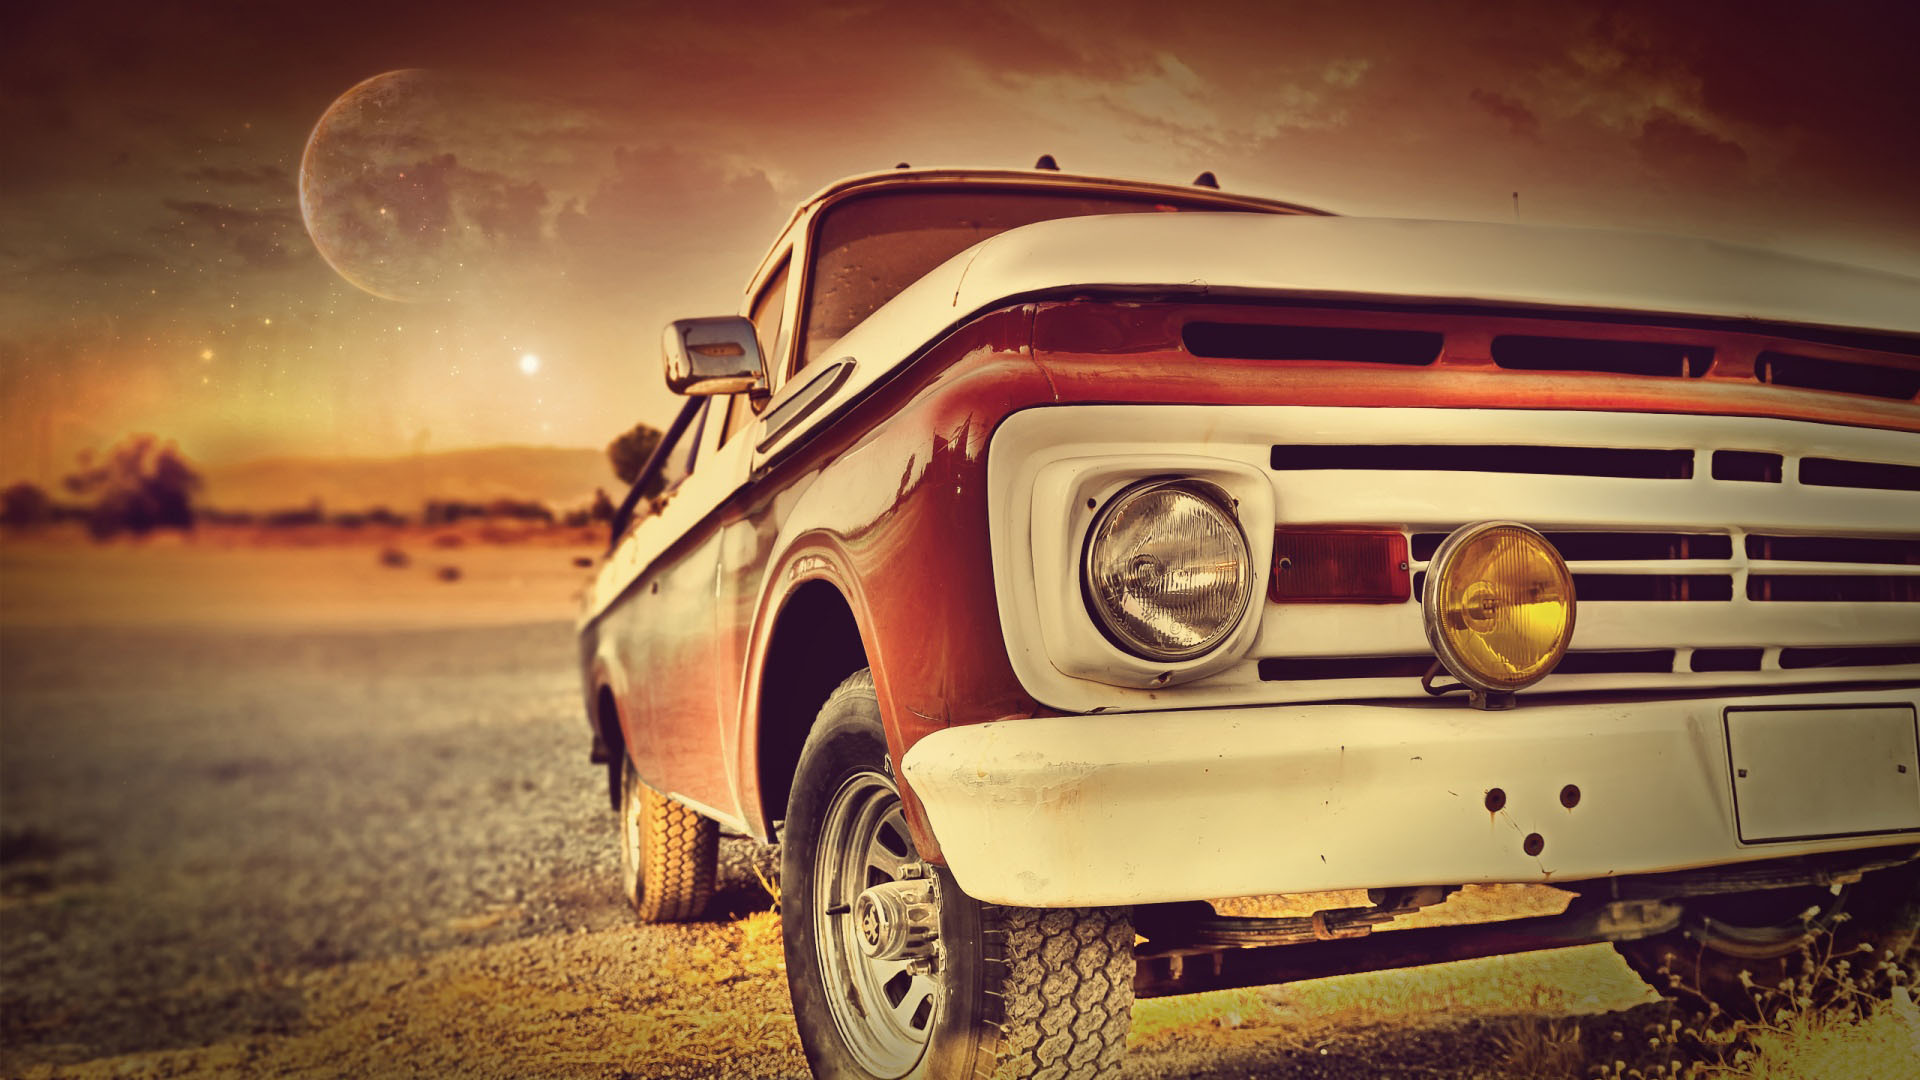 Vintage Red Car In The Sunset   HD Wallpaper Old Car Wallpaper Download  1920x1080